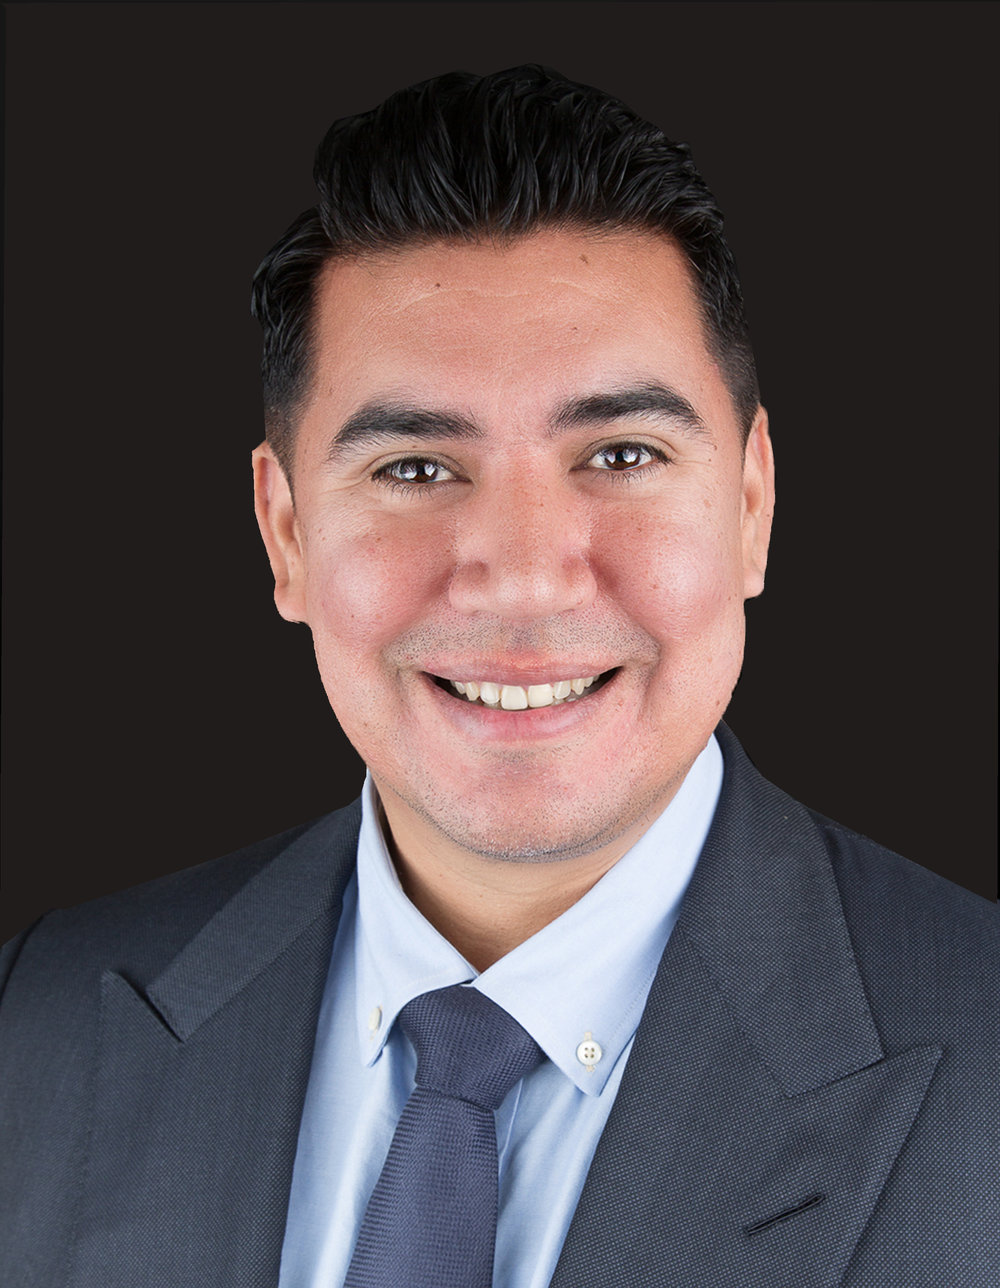 Jacob Cordova - Headshot2.jpg